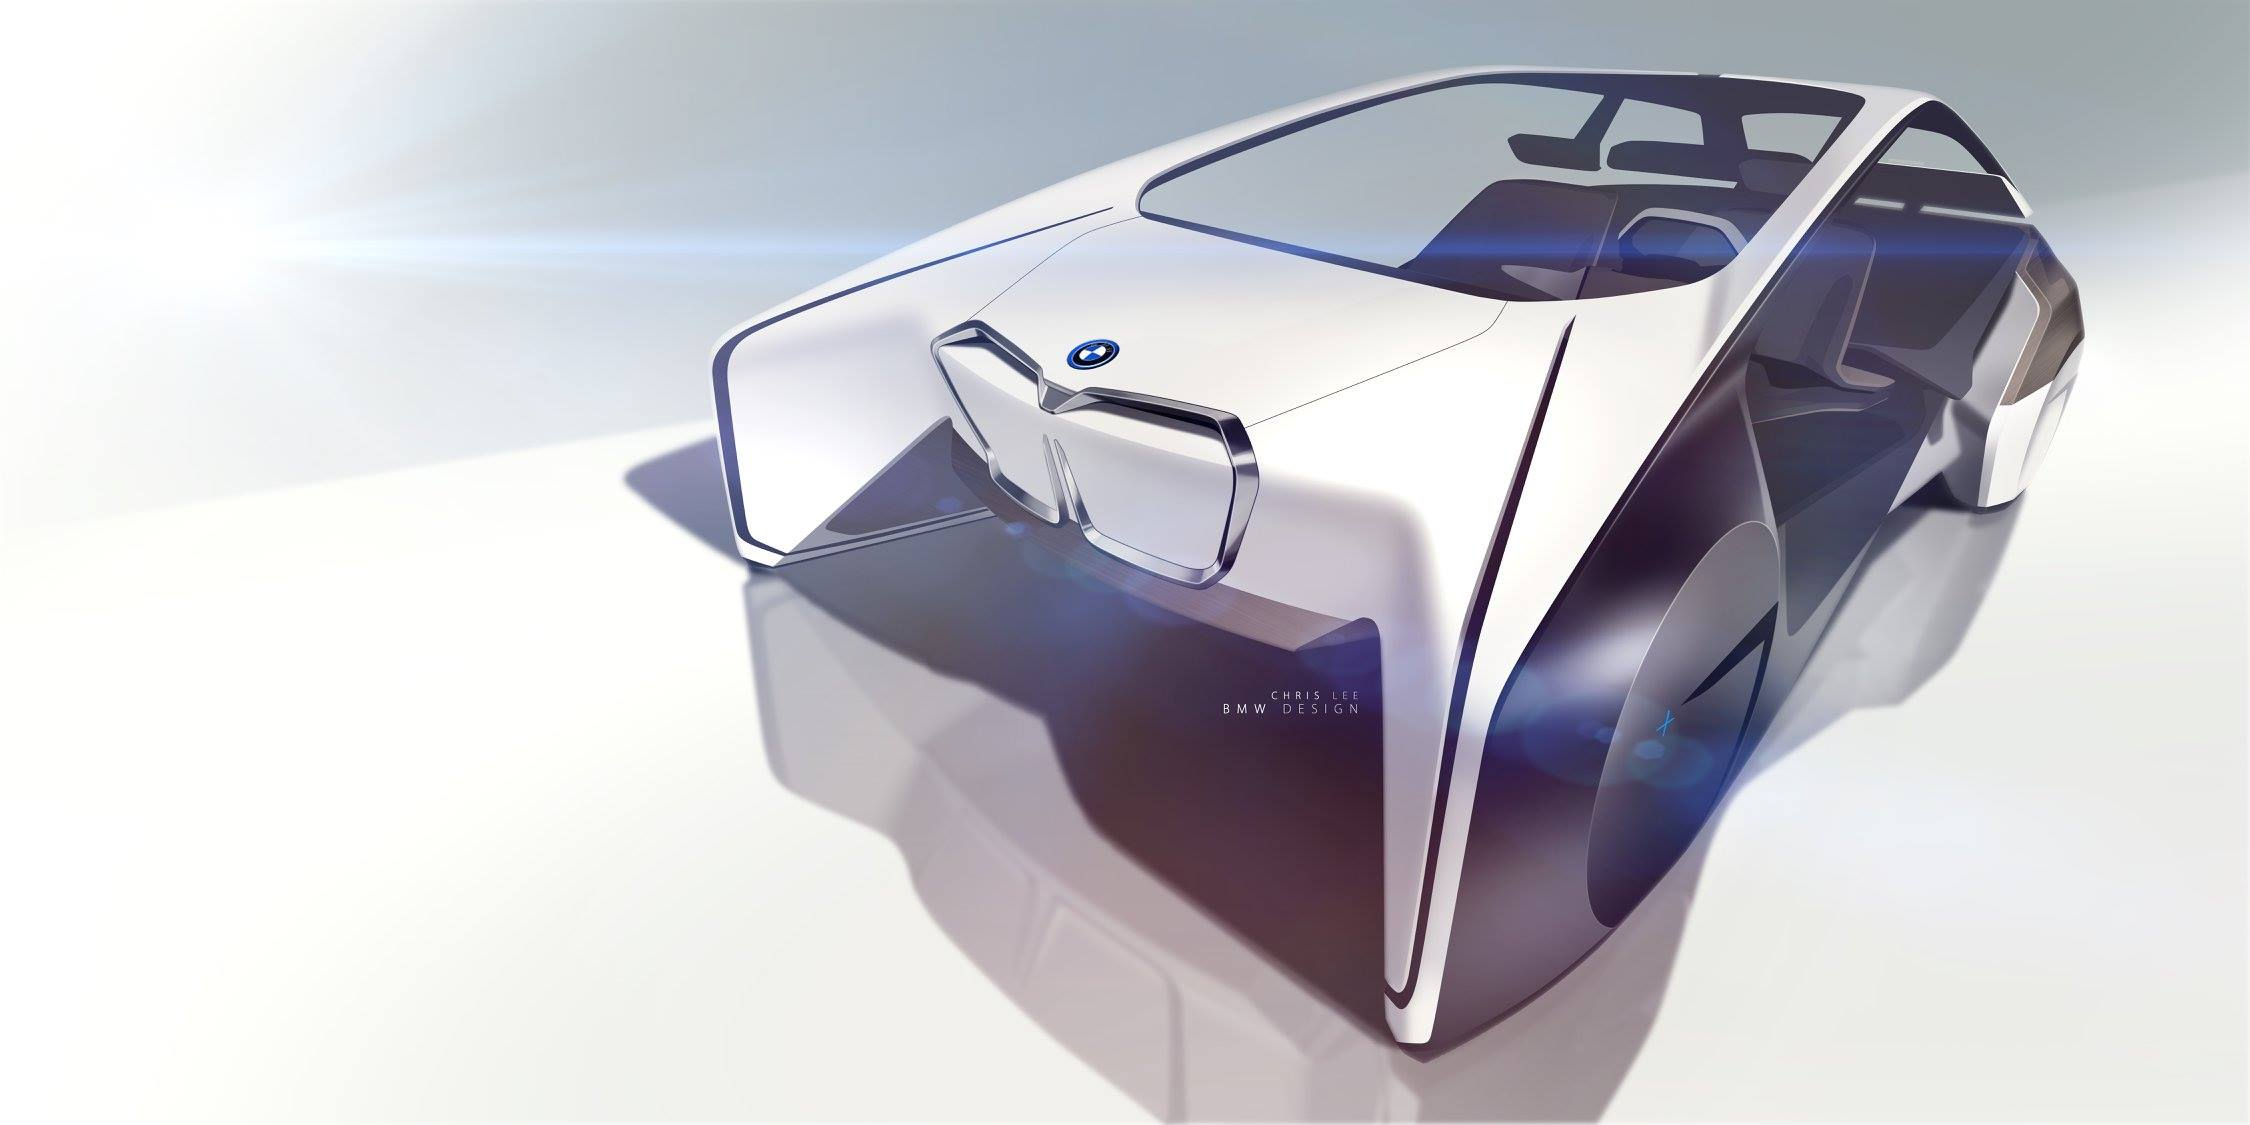 BMW Group Design - Timeline